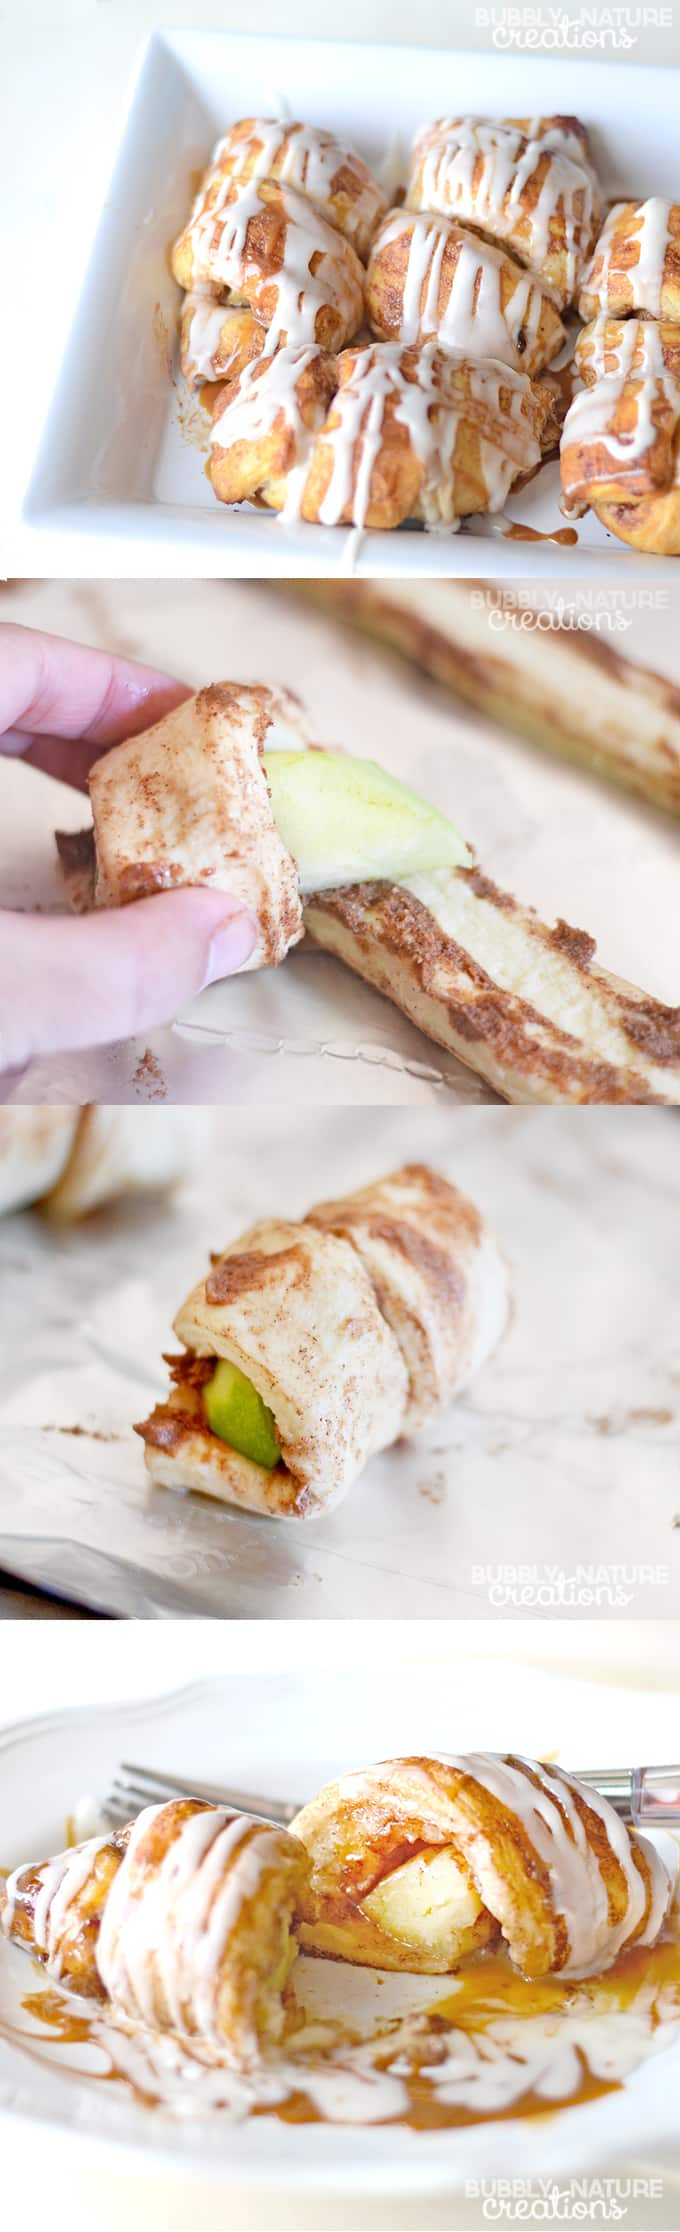 Caramel Apple Cinnamon Roll Ups! Easy treat made with only 3 ingredients!